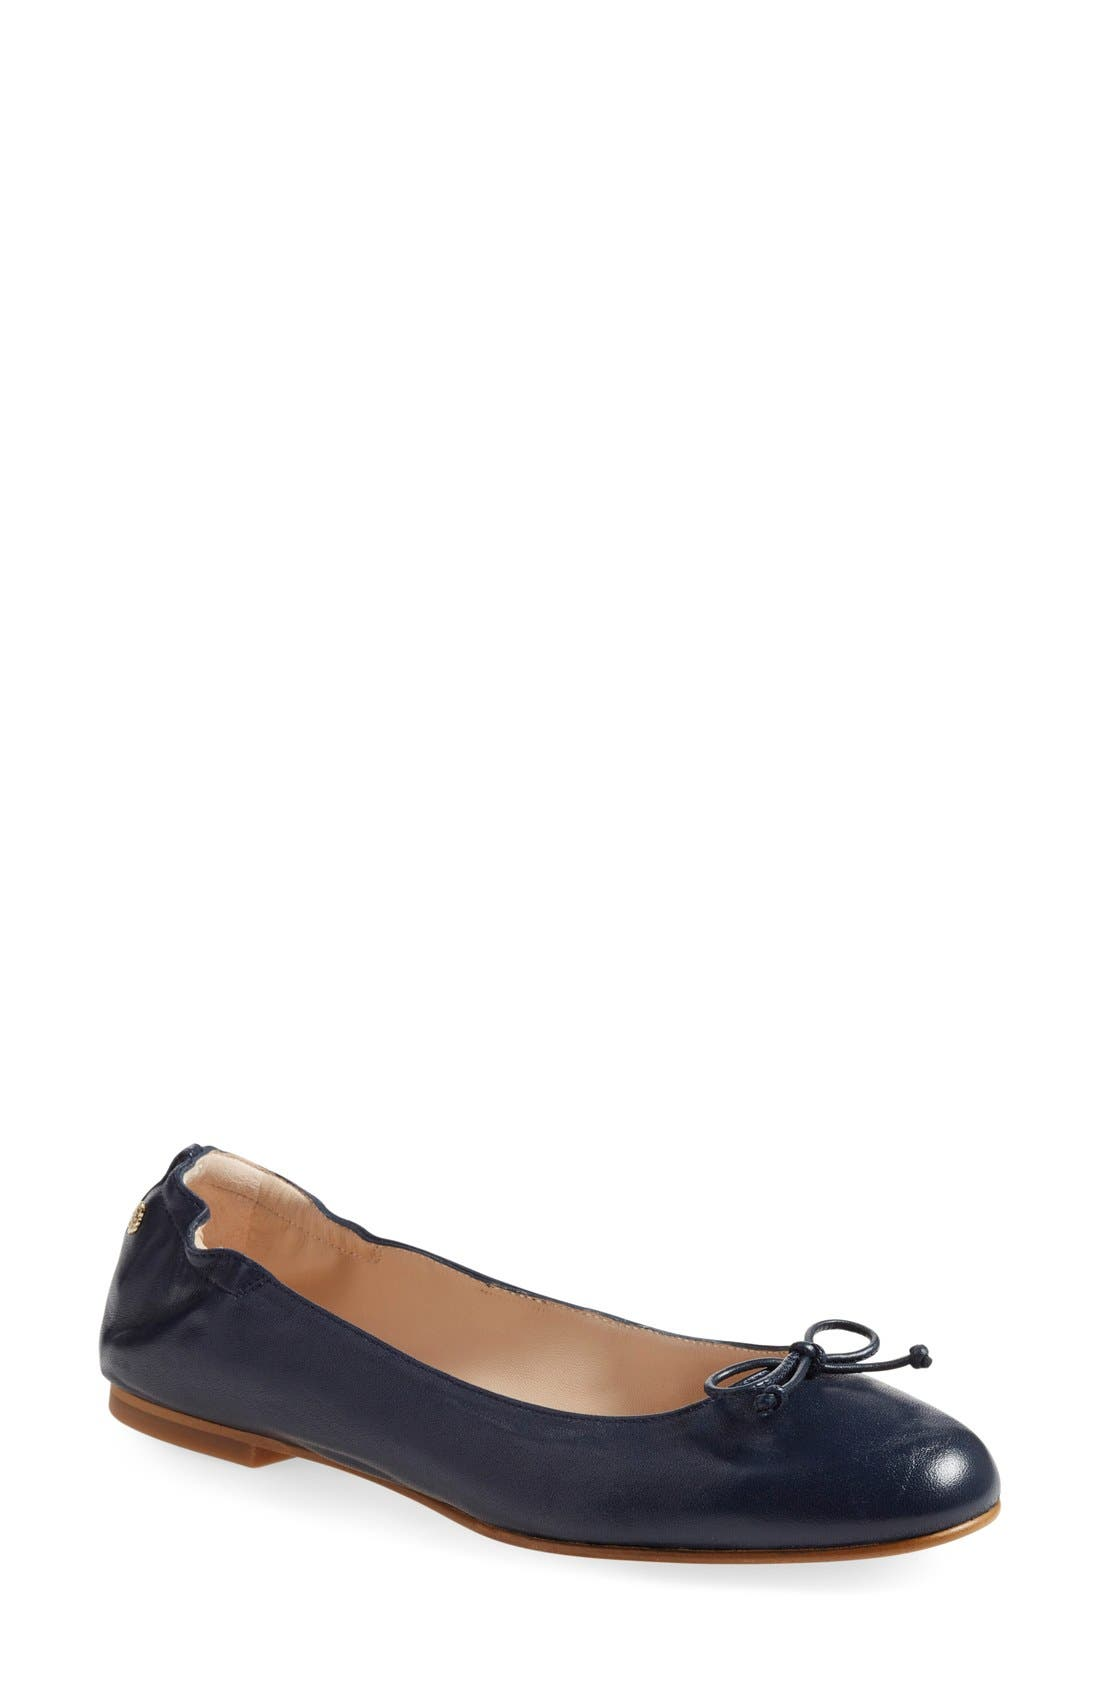 'Thea' Ballet Flat,                             Main thumbnail 1, color,                             Navy Leather